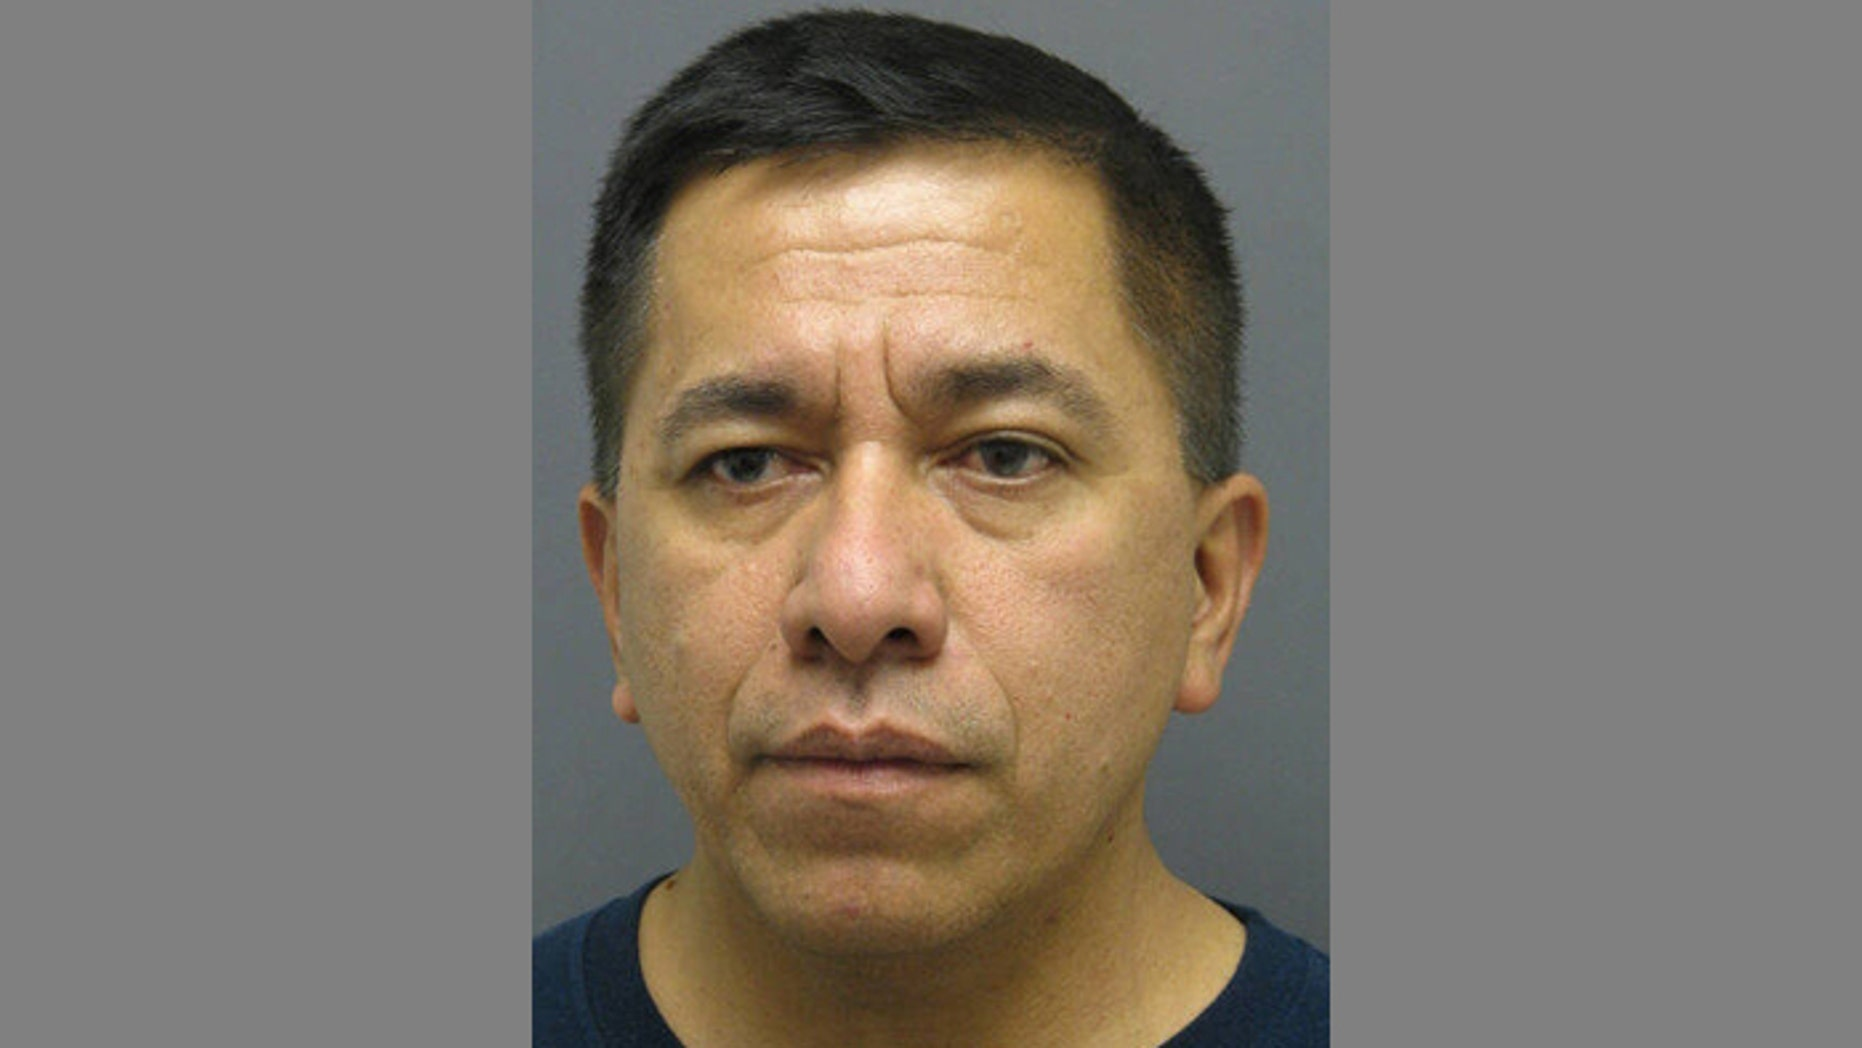 Woodbridge official charged with sex allegations